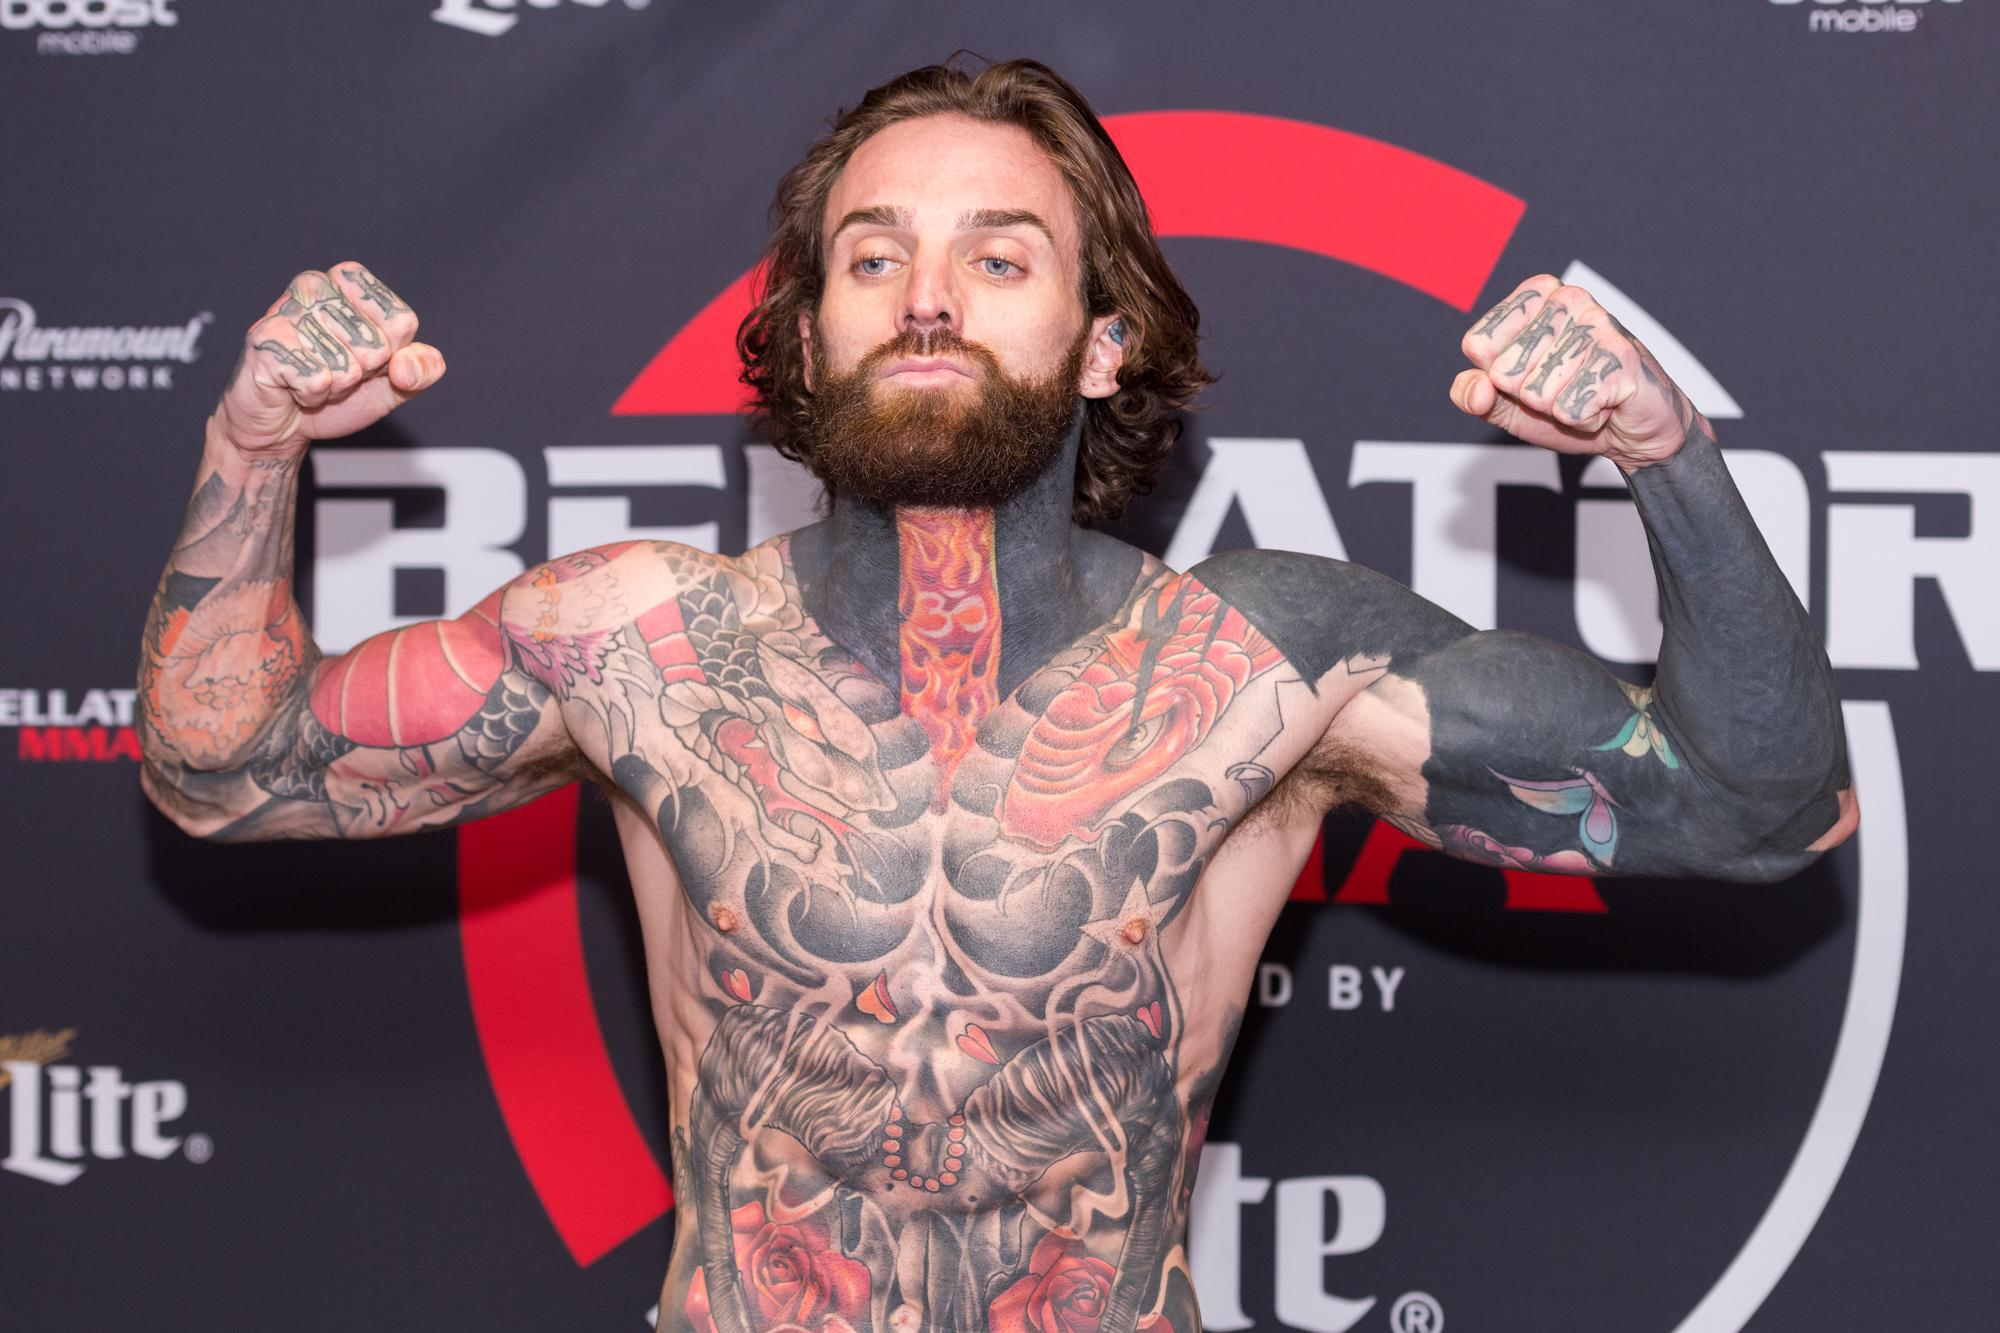 Chalmers's next fight is in February for Bellator MMA